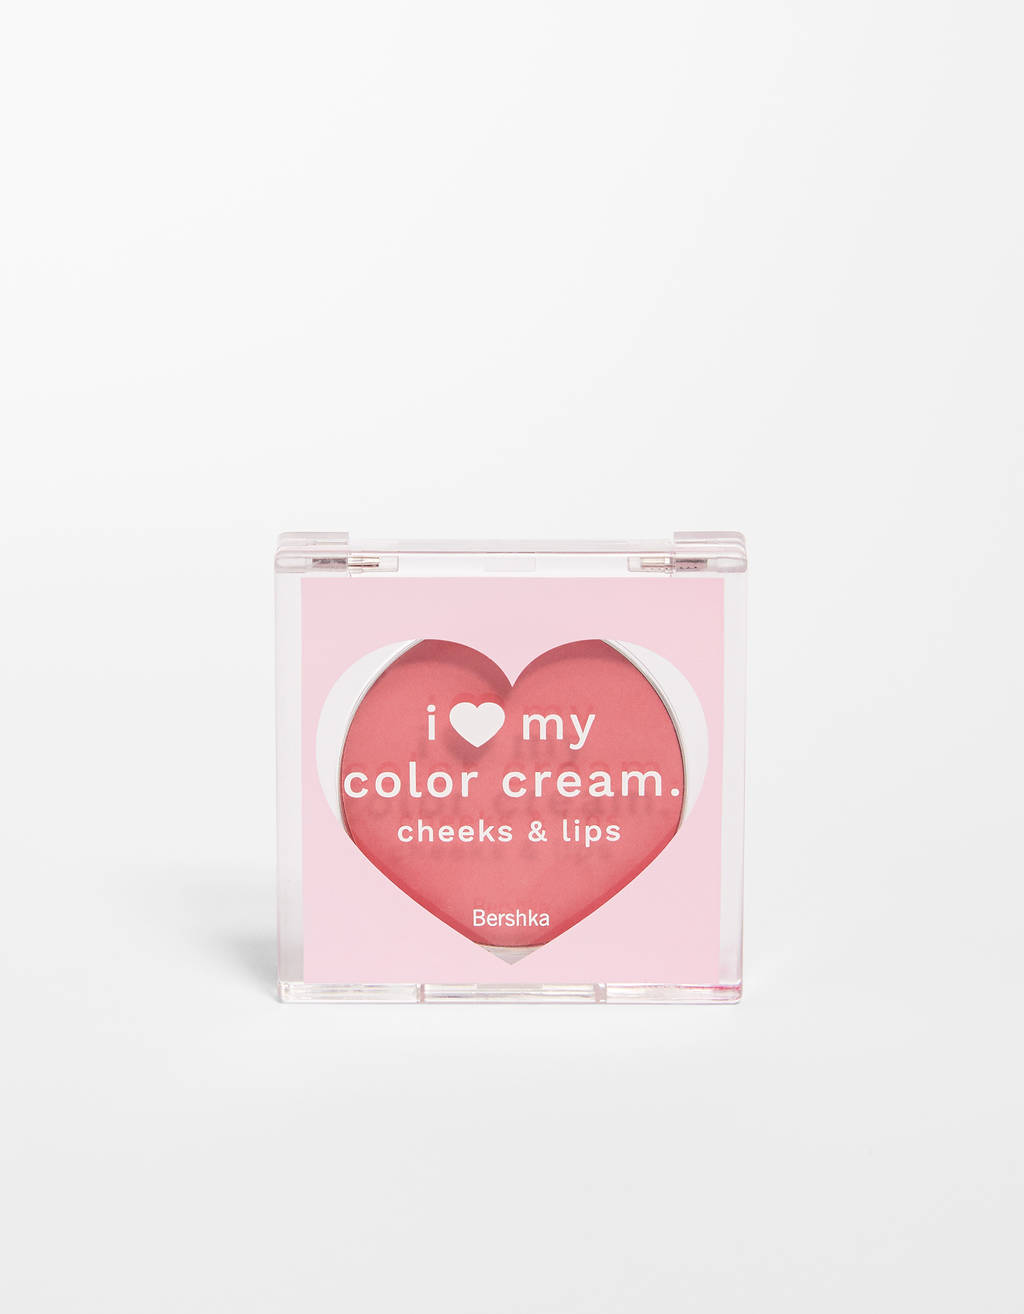 I ❤ MY COLOR CREAM POM POM PINK